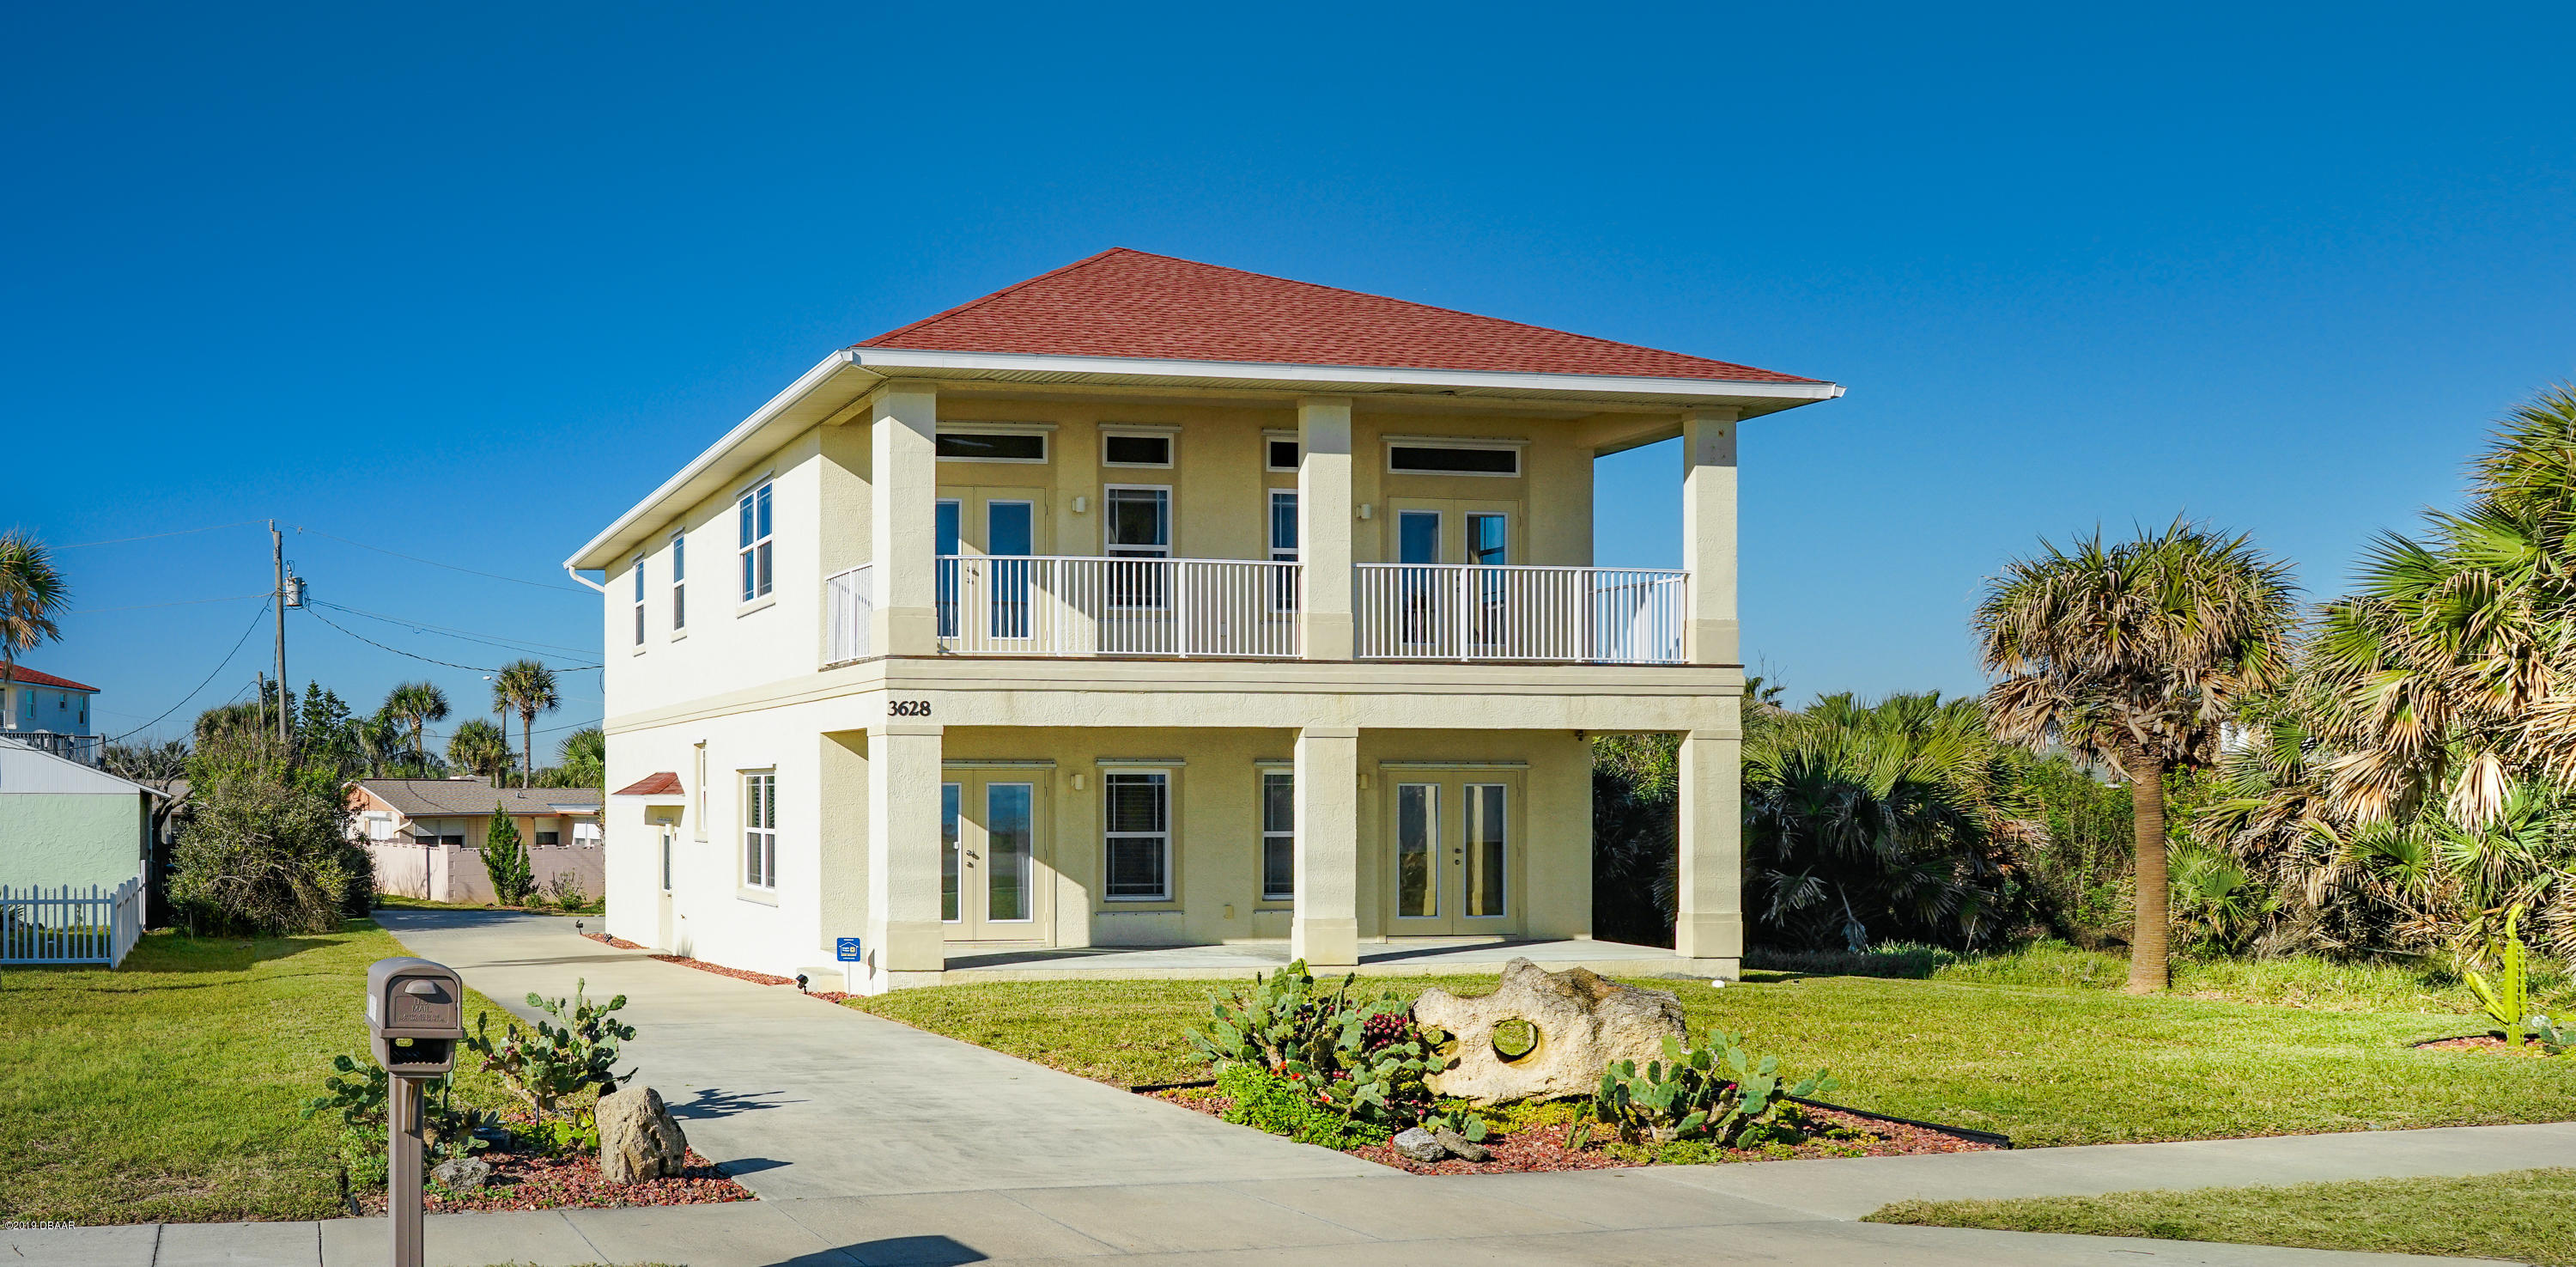 3628 Ocean Shore Boulevard, Ormond-By-The-Sea, Florida